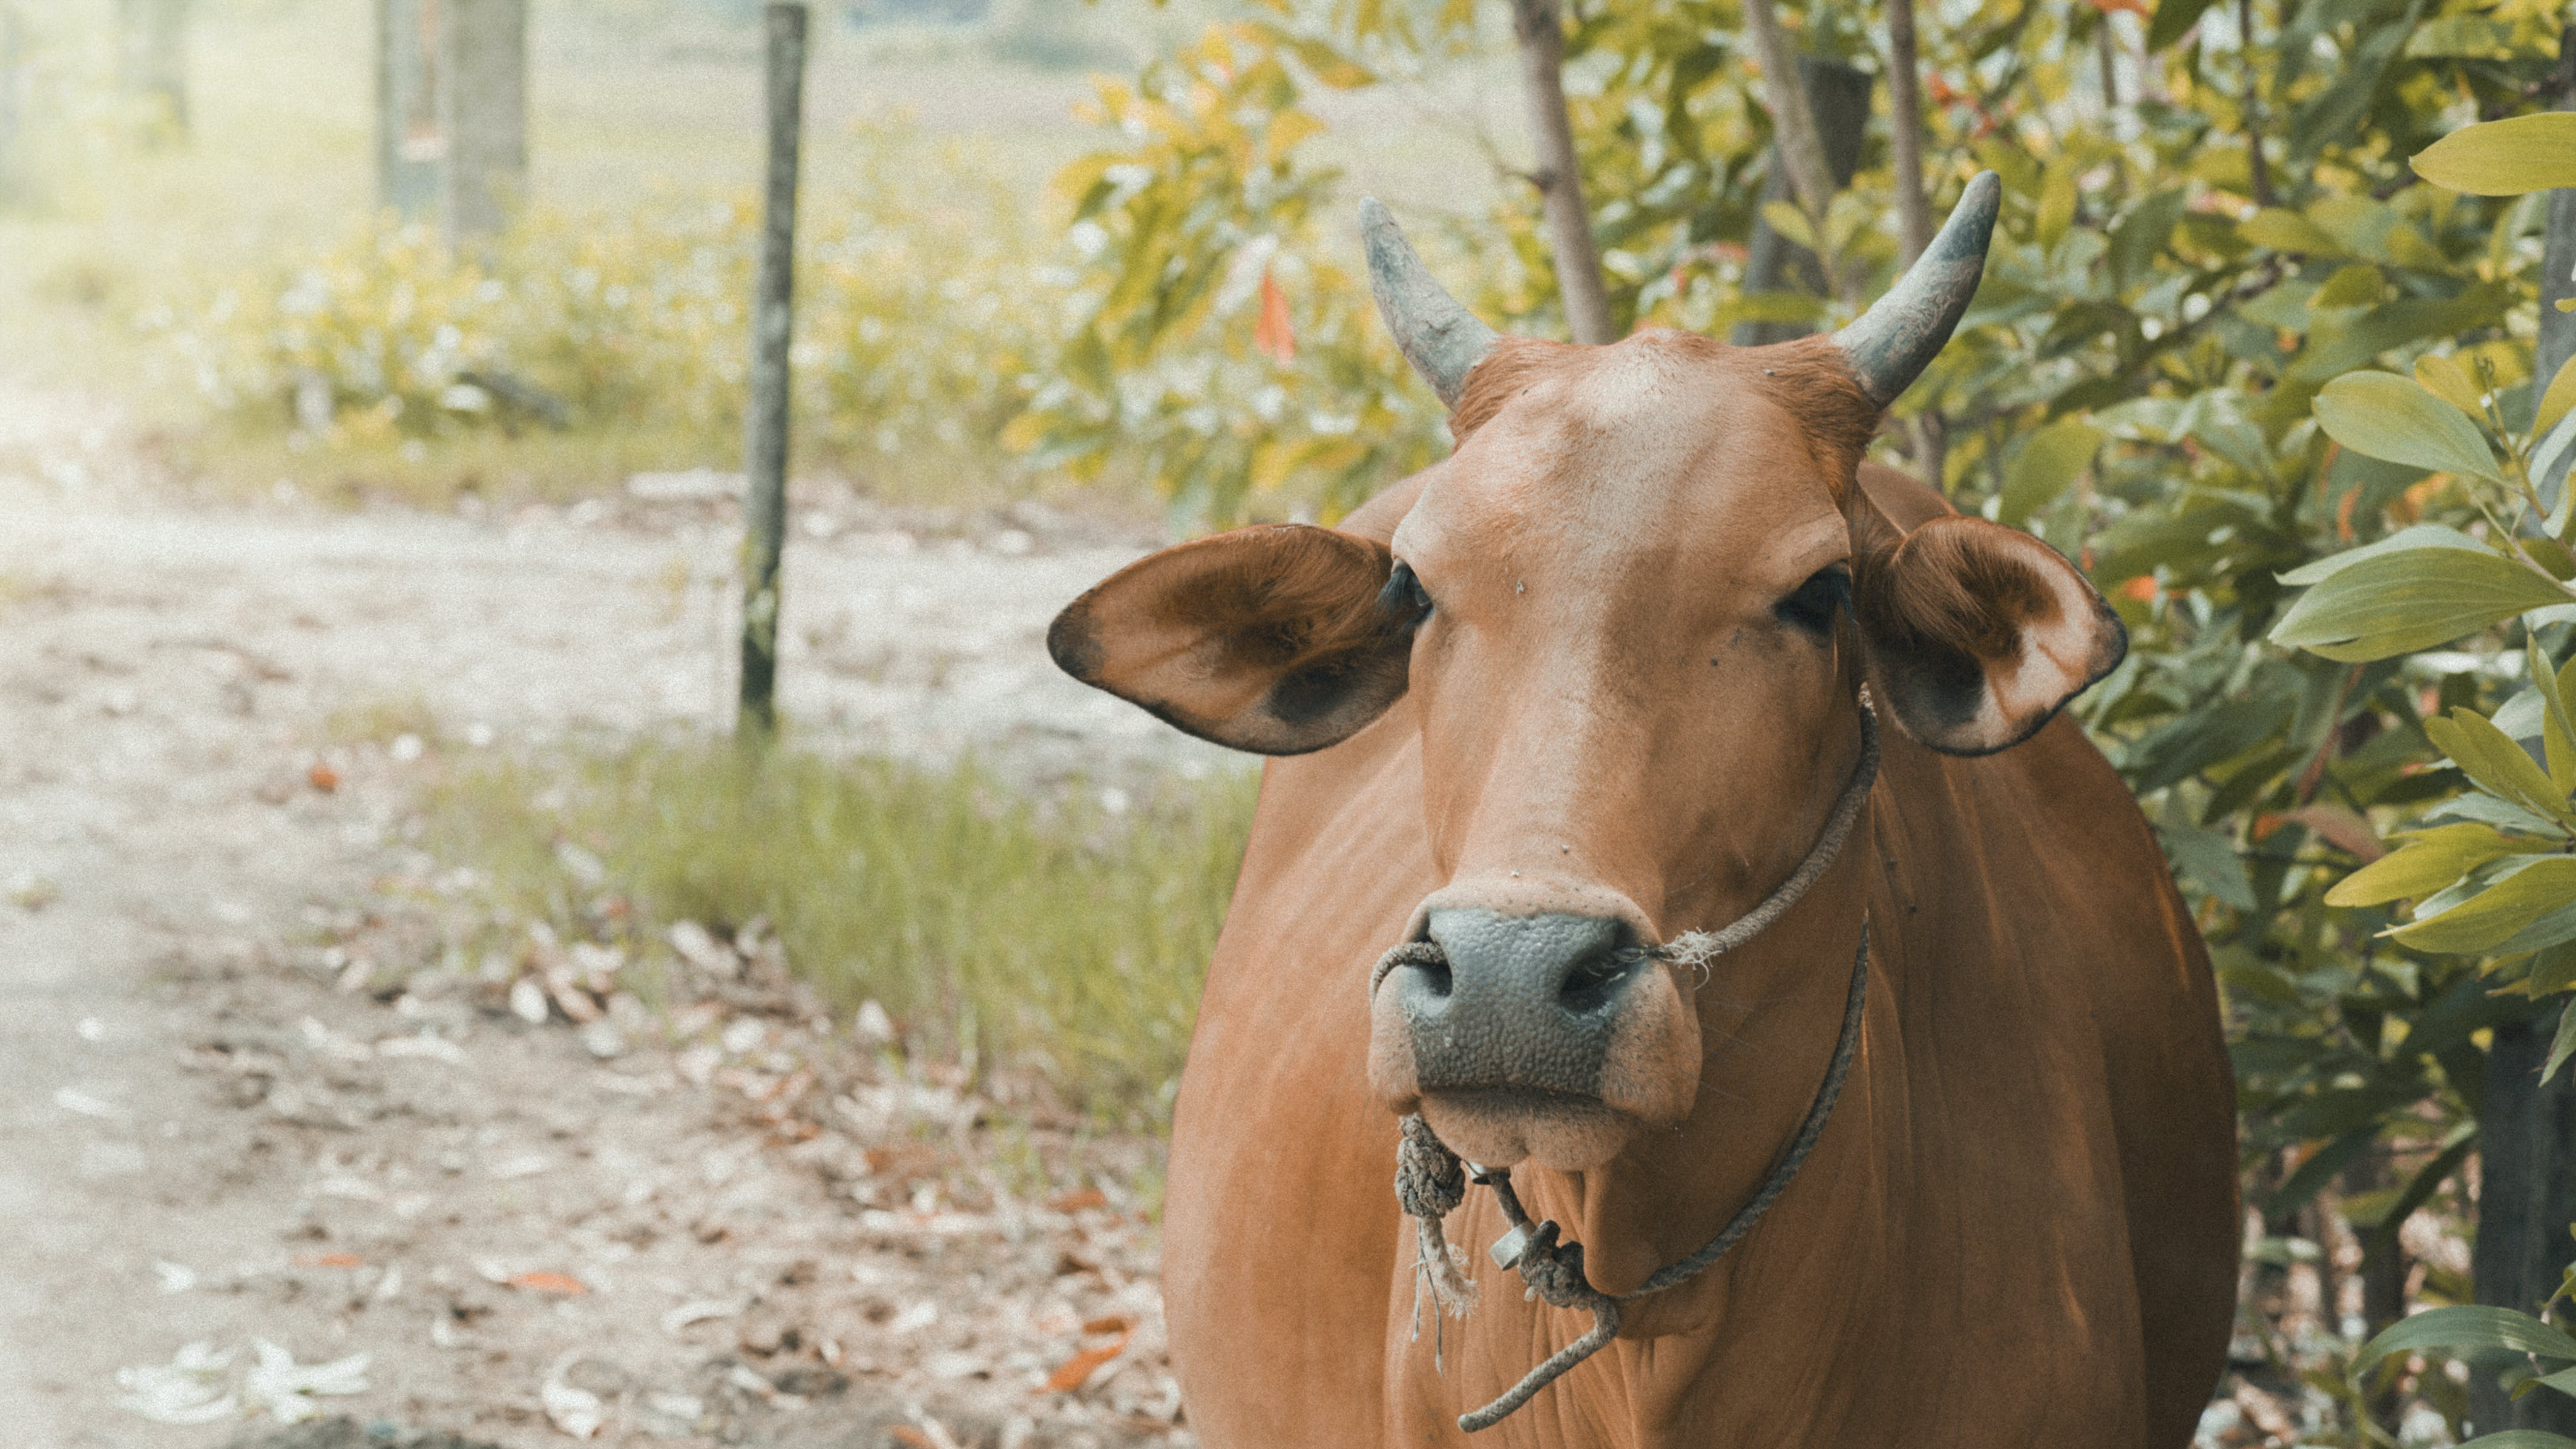 Brown Cow Standing Near Plants